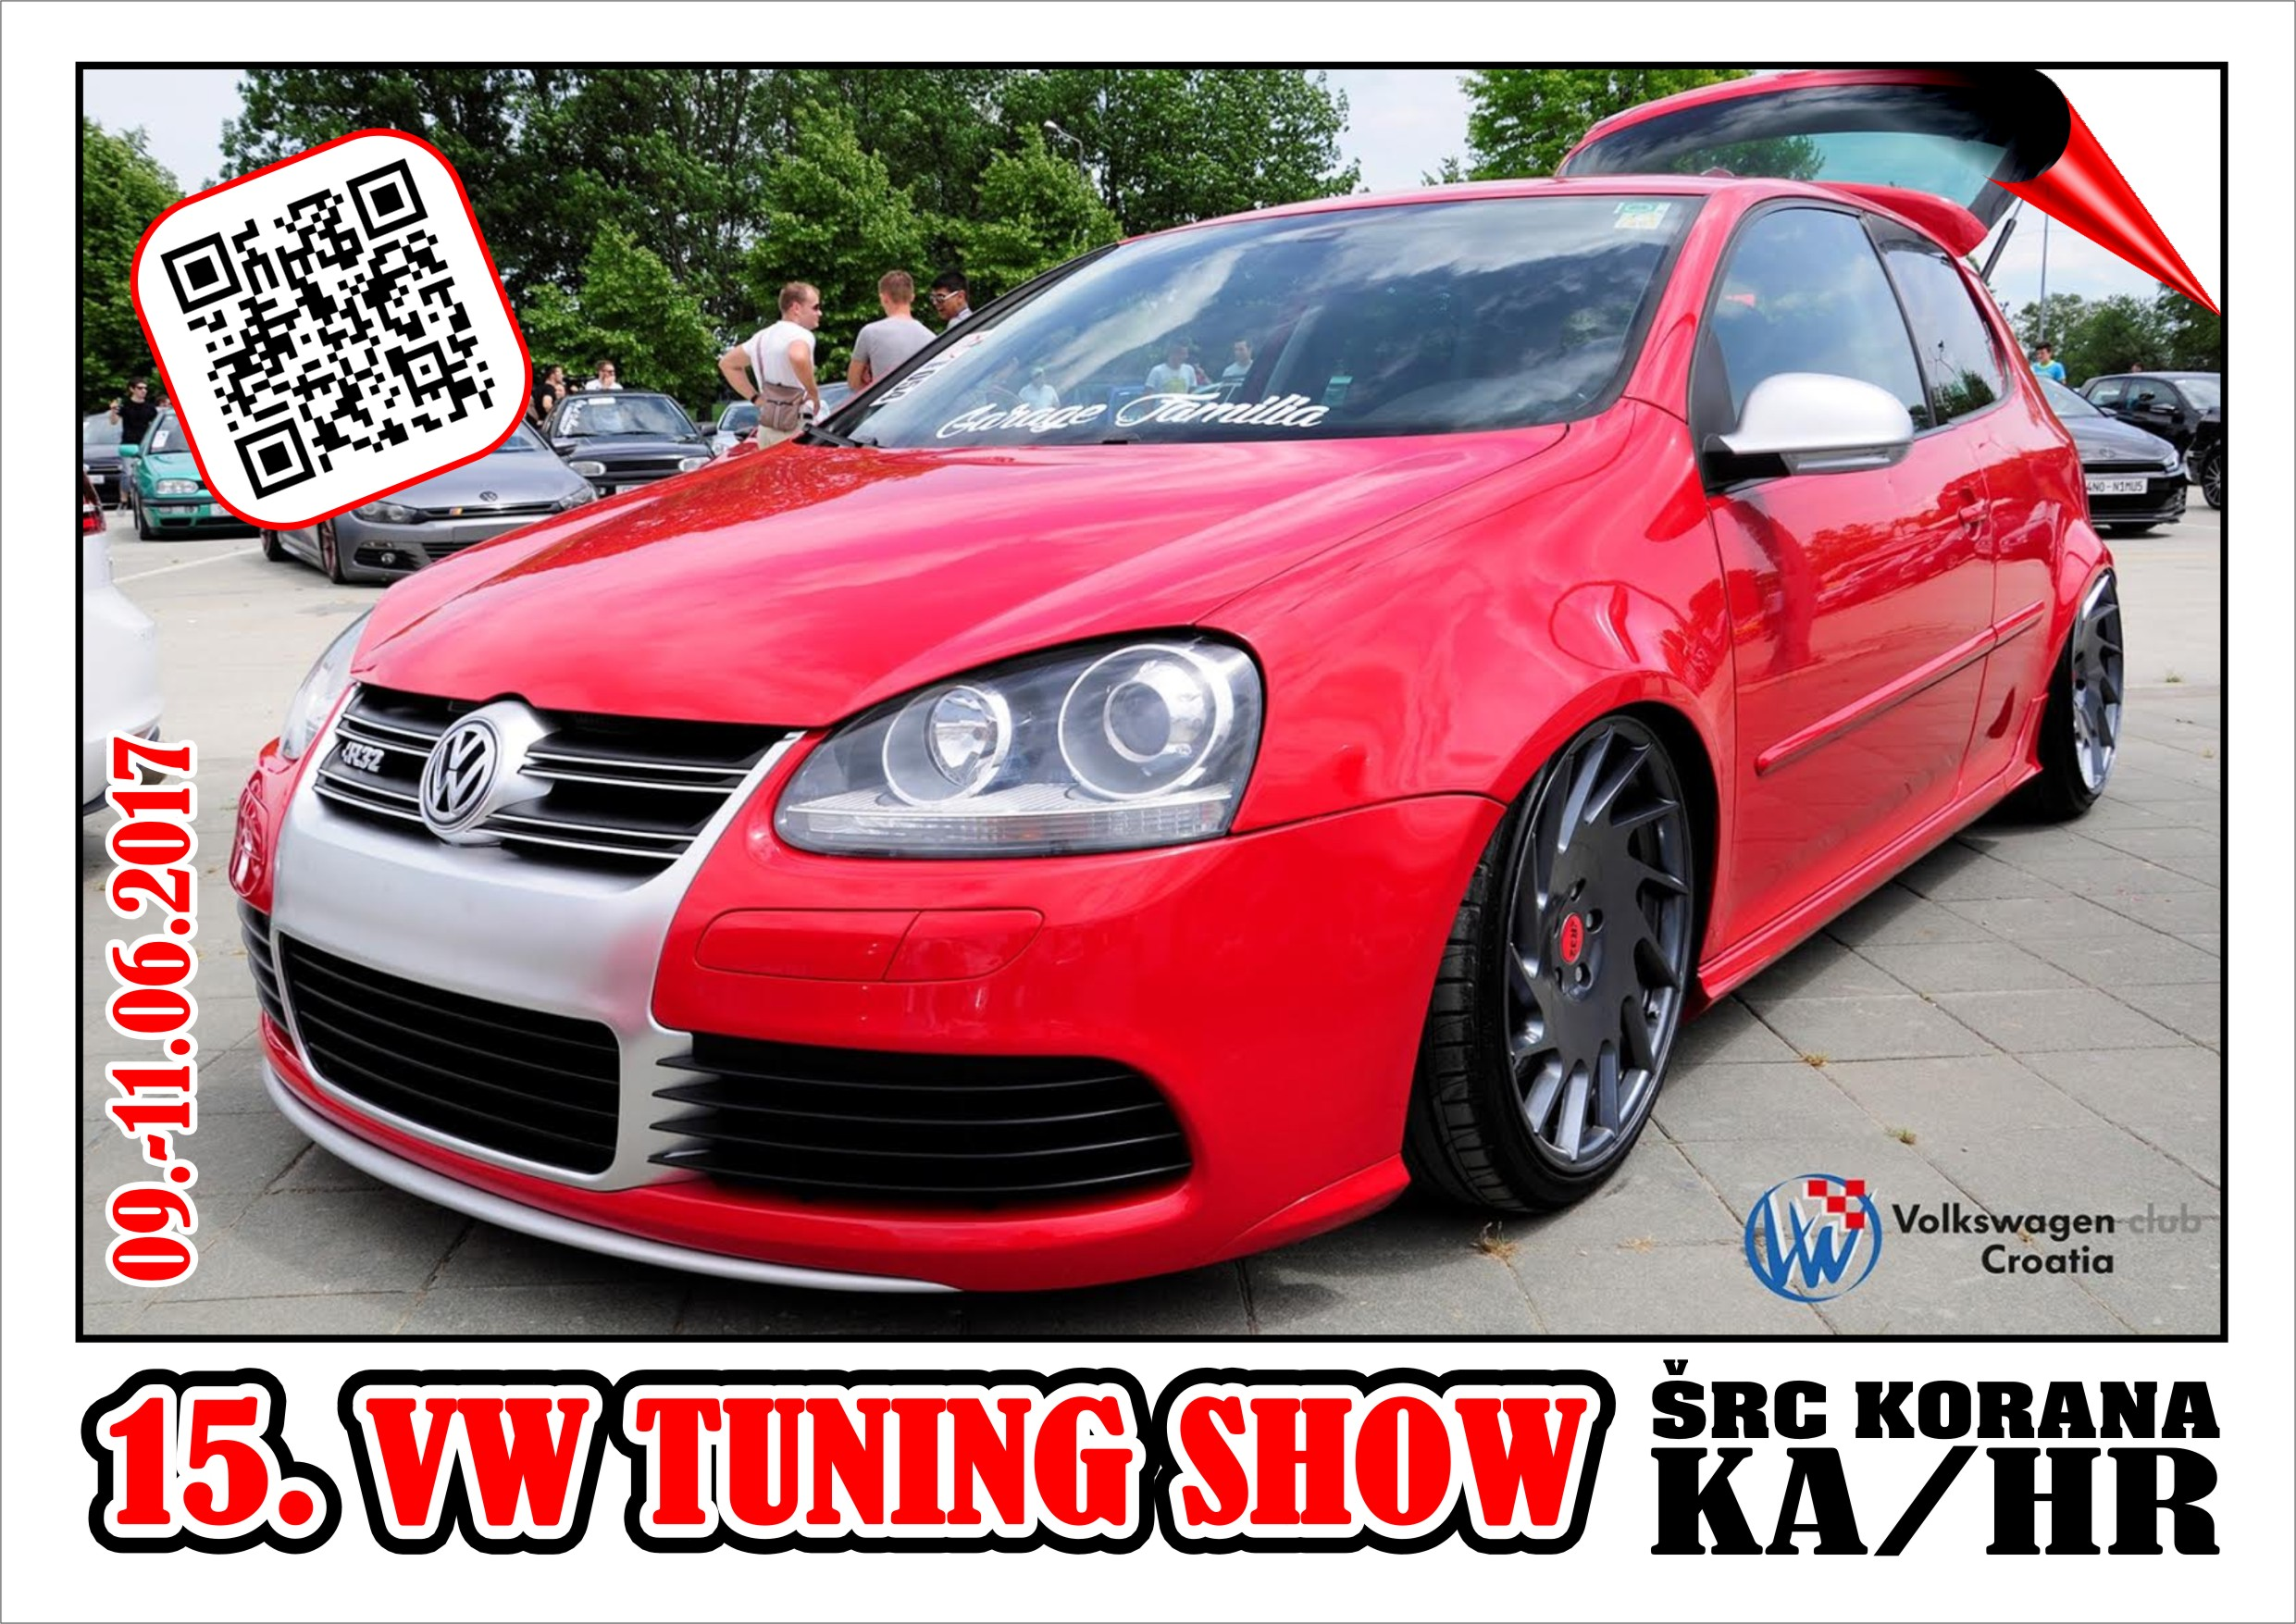 15. VW Tuning Show 09.-11.06.2017 KA/HR